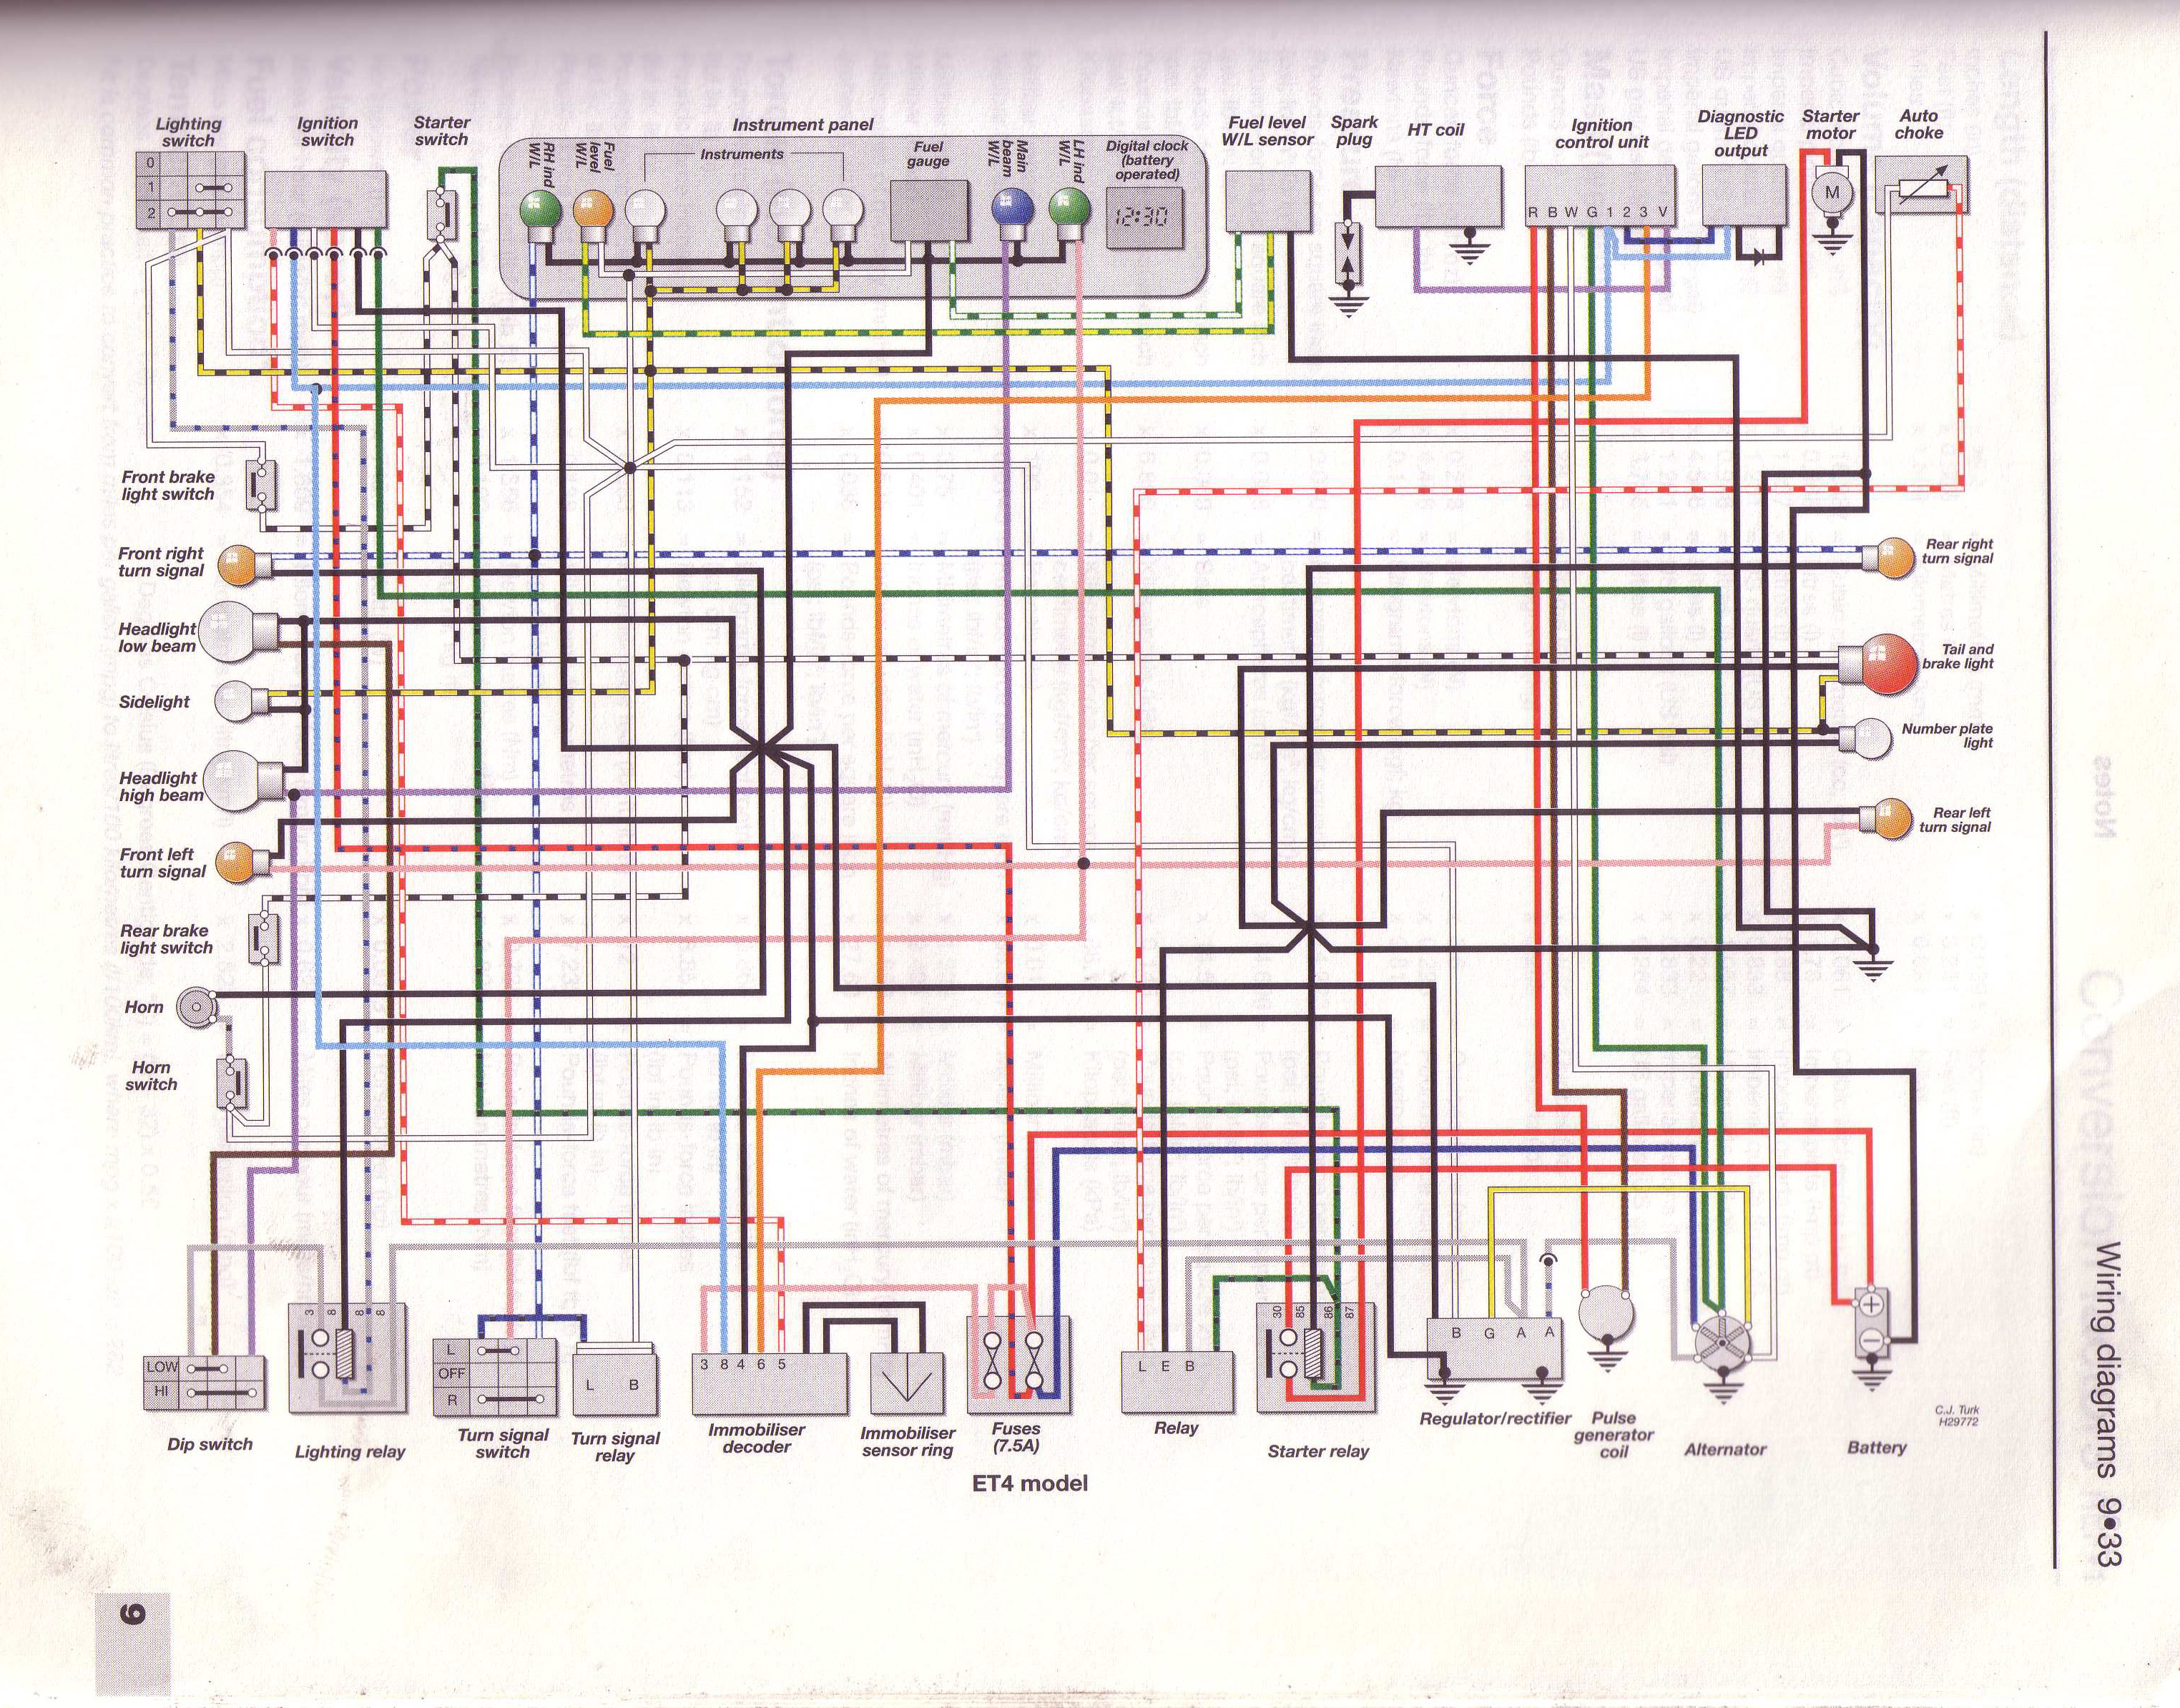 Vespa gt200 wiring diagram introduction to electrical wiring manualki rh vespaclub org pl light switch wiring diagram vespa scooter wiring diagram cheapraybanclubmaster Choice Image